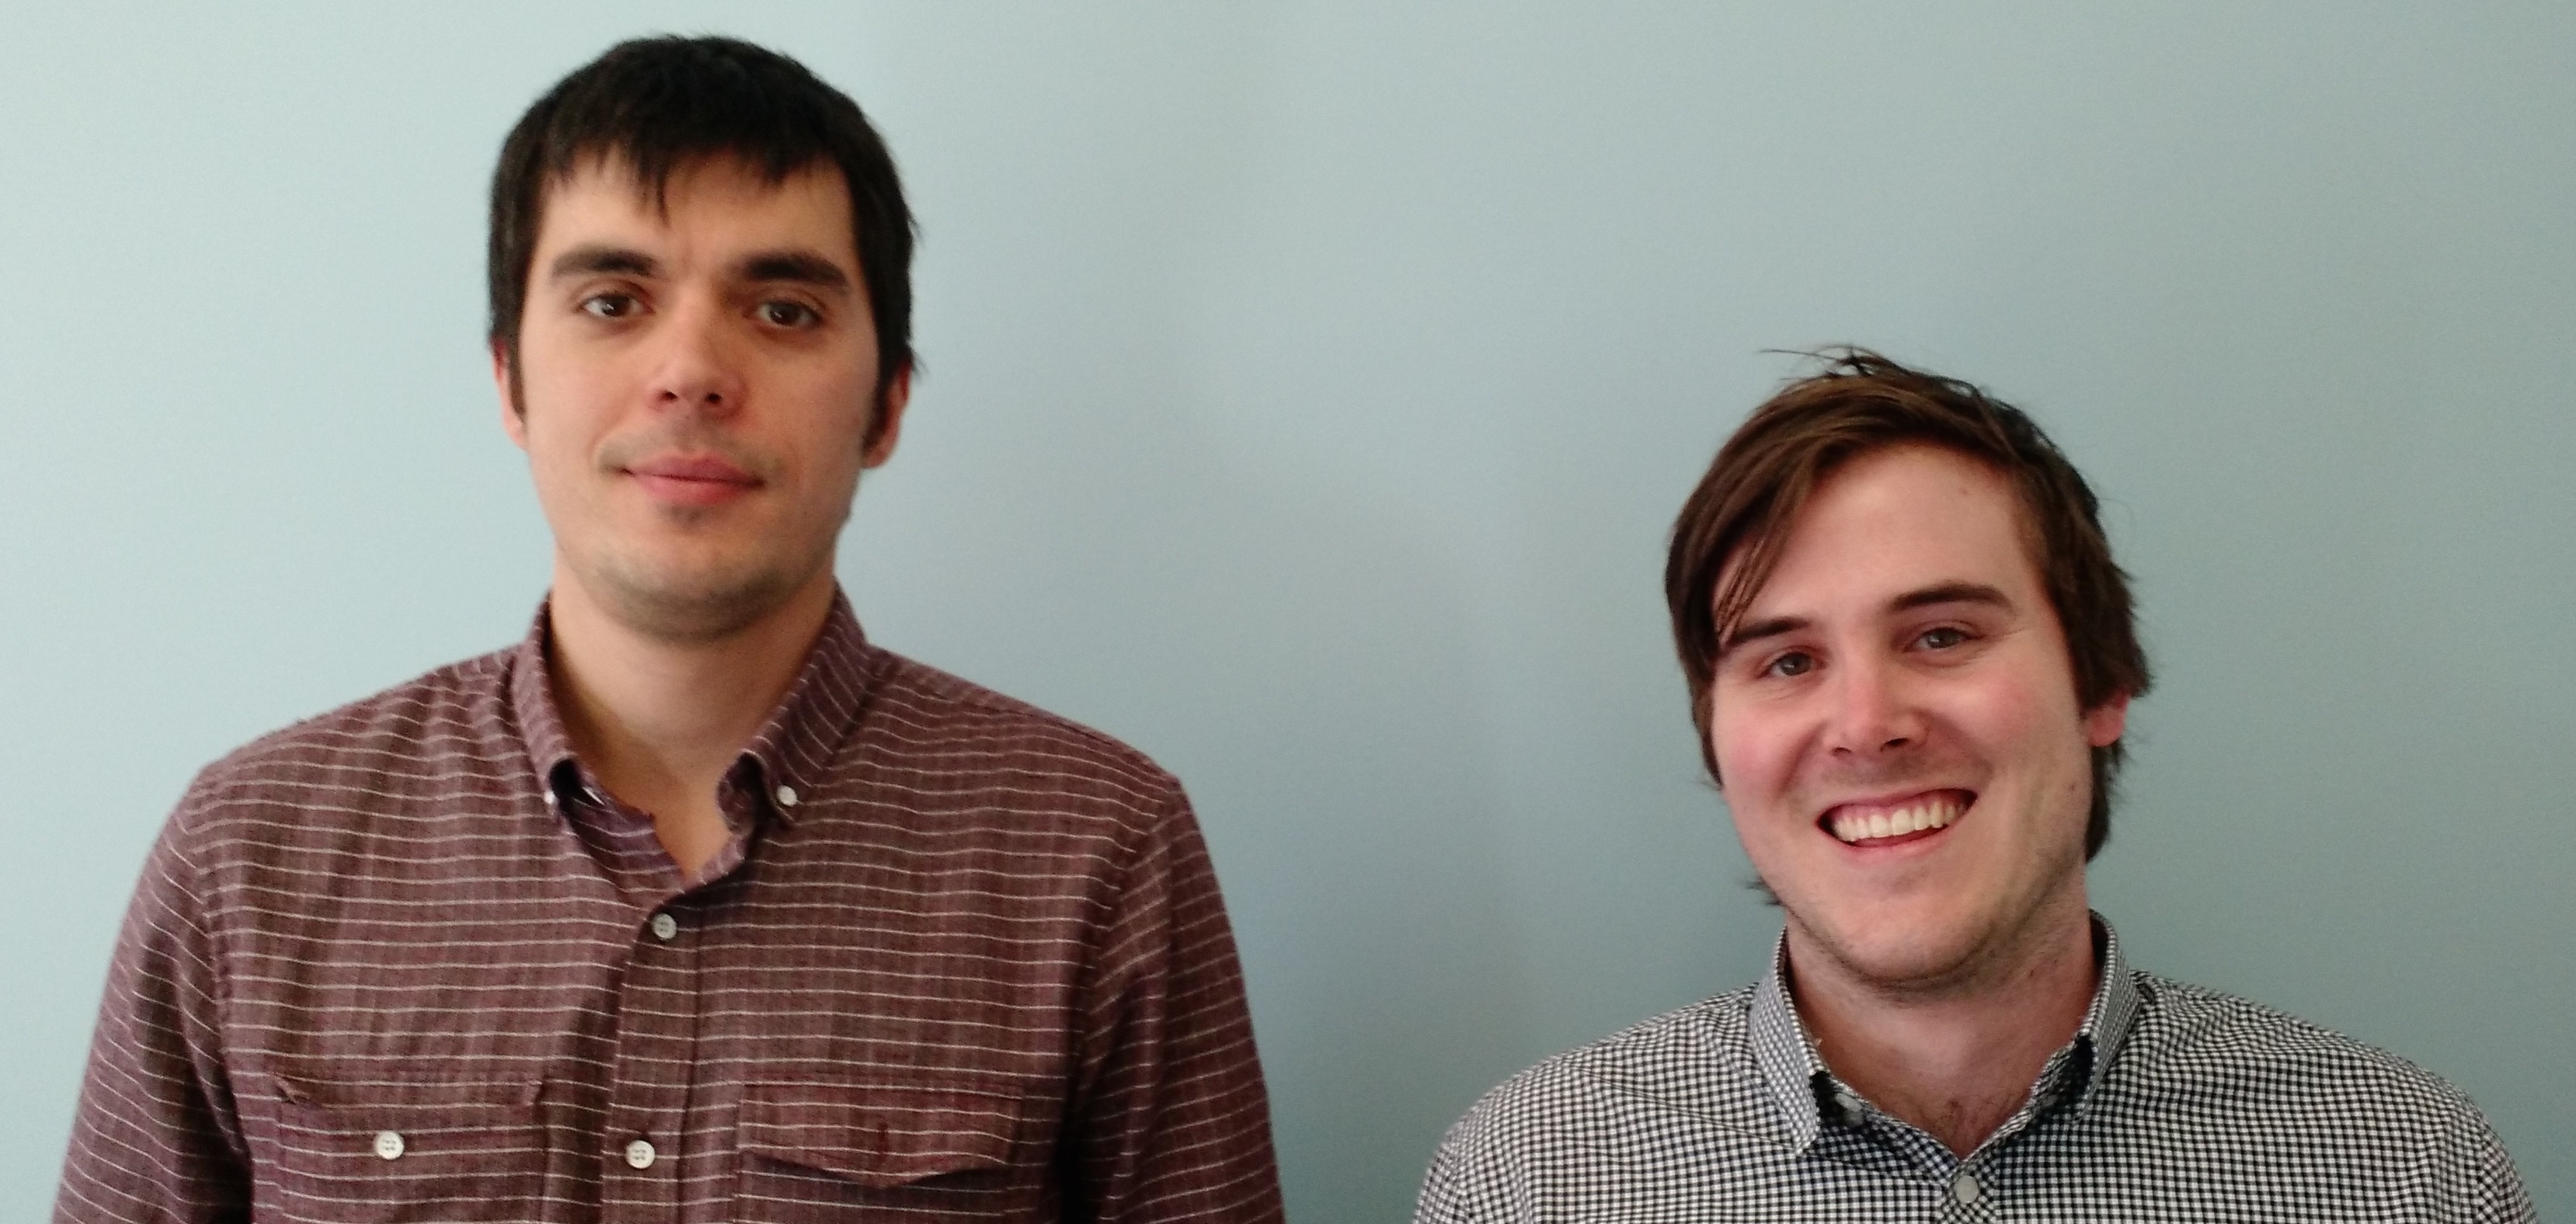 ClusterK chief executive Dmitry Pushkarev, left, and the startup's head of sales, Boyd McGeachie, who previously worked in sales at Amazon Web Services.